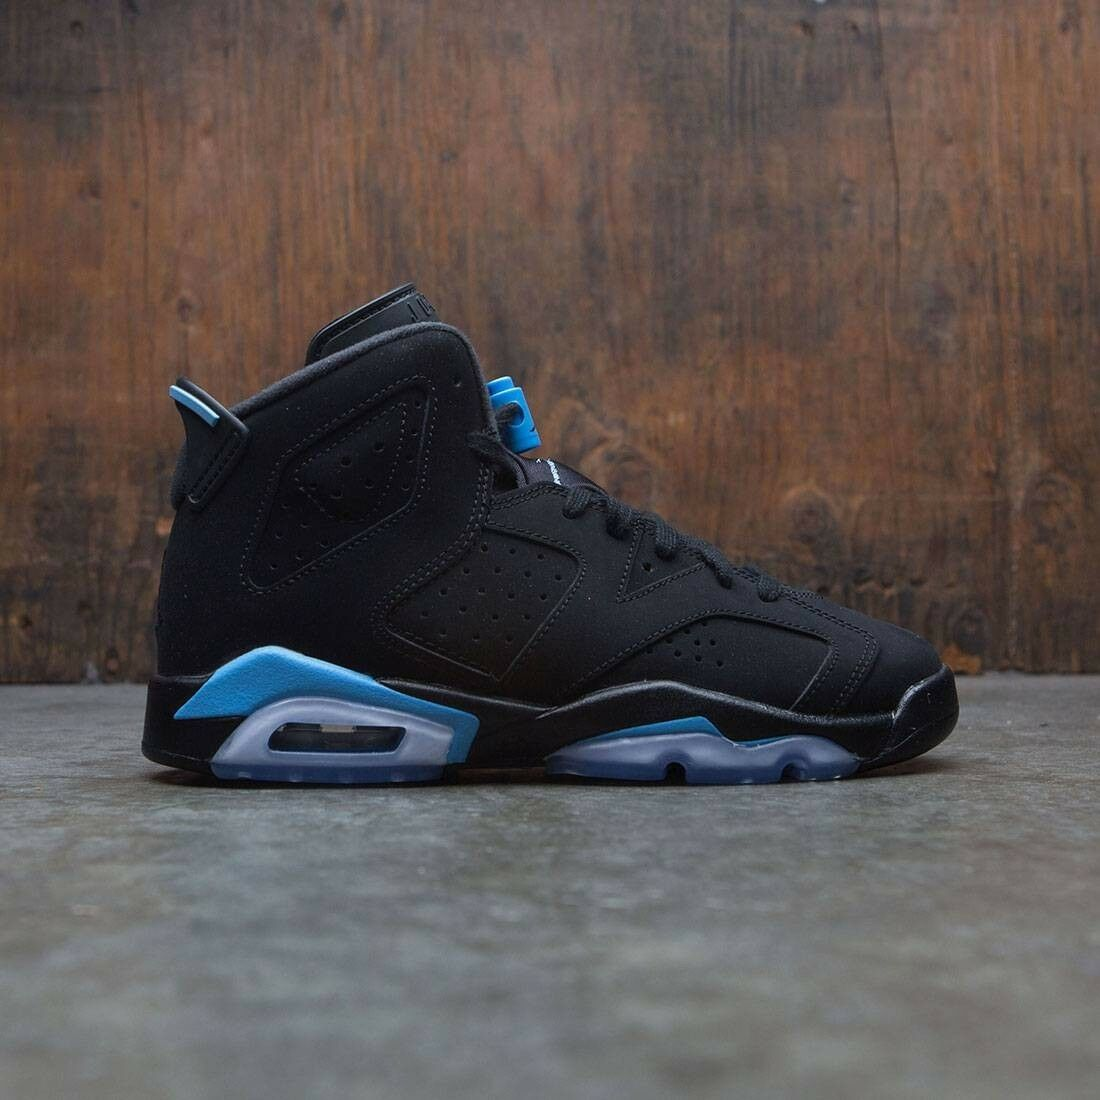 2018 Nike Air Jordan 6 VI Retro Black University Blue Comfortable best-selling model of the brand